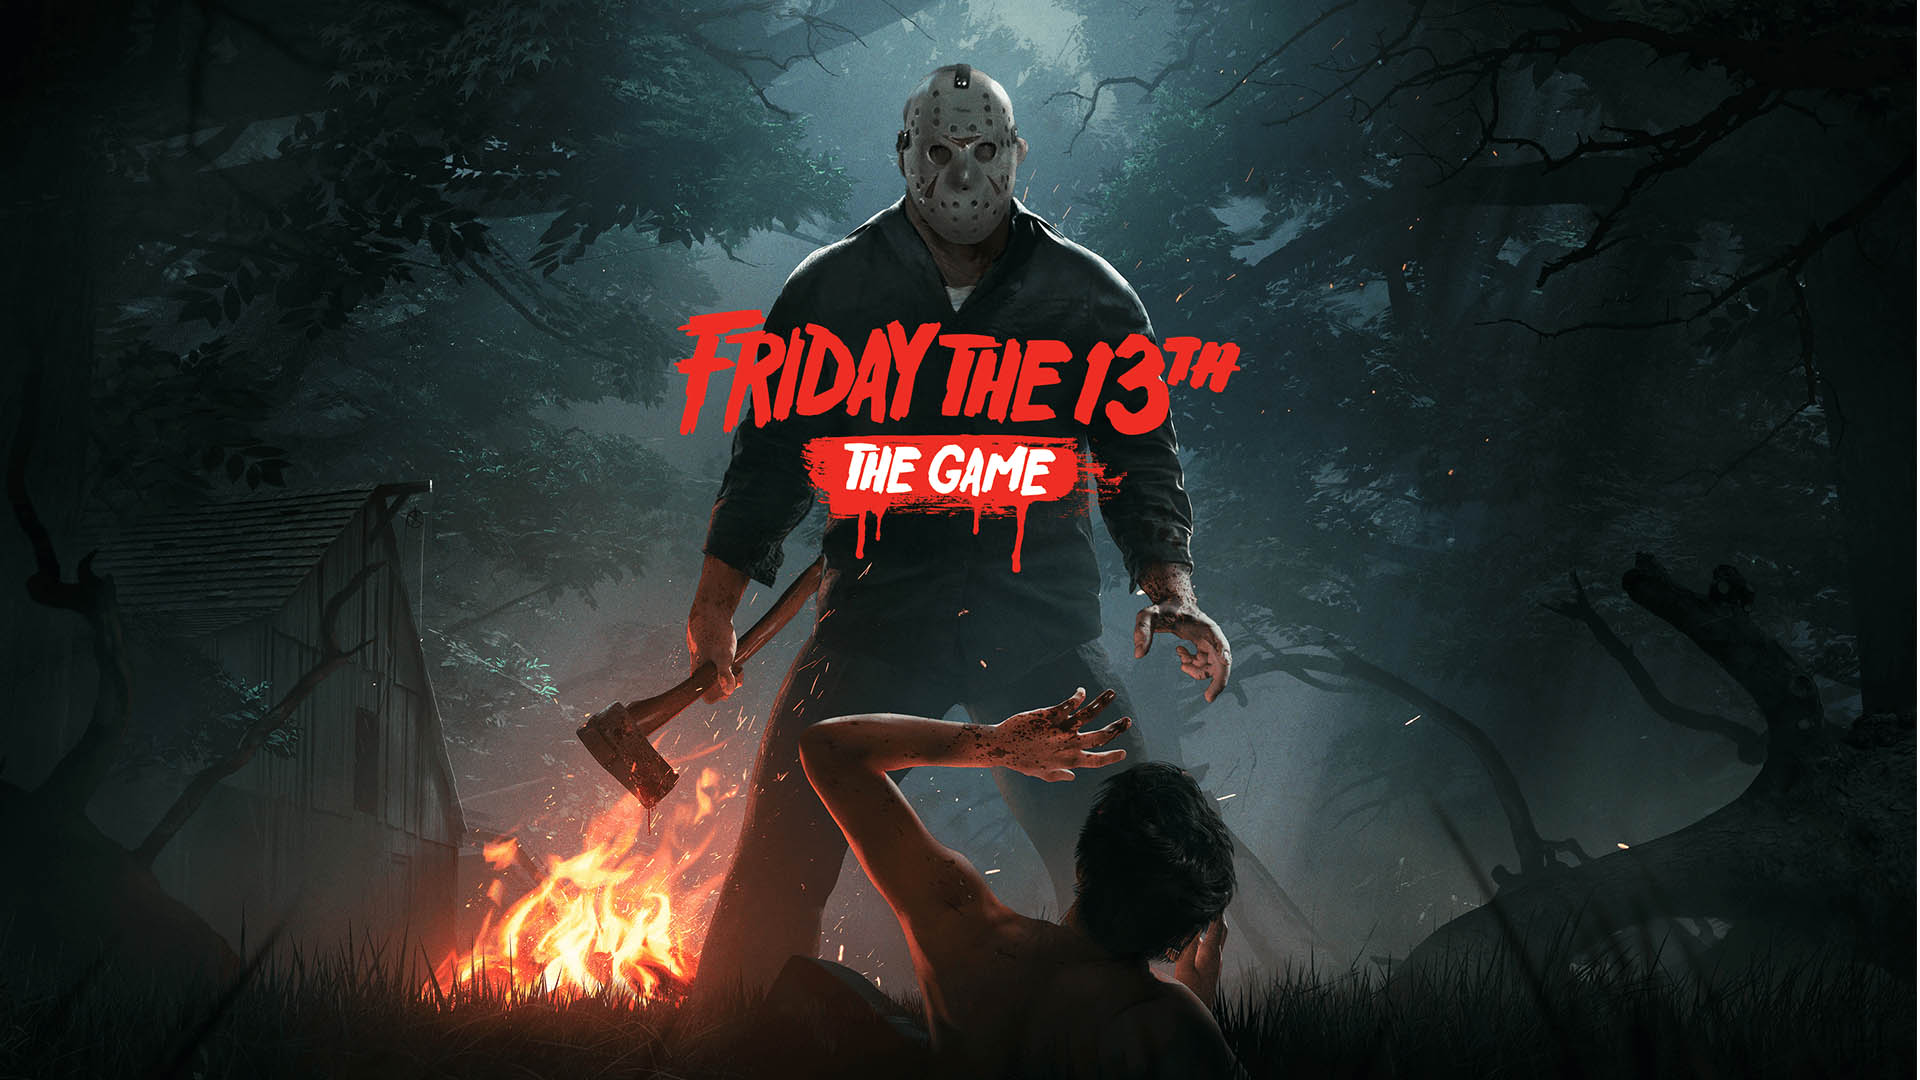 Friday the 13th: The Game: Ab sofort erhältlich!